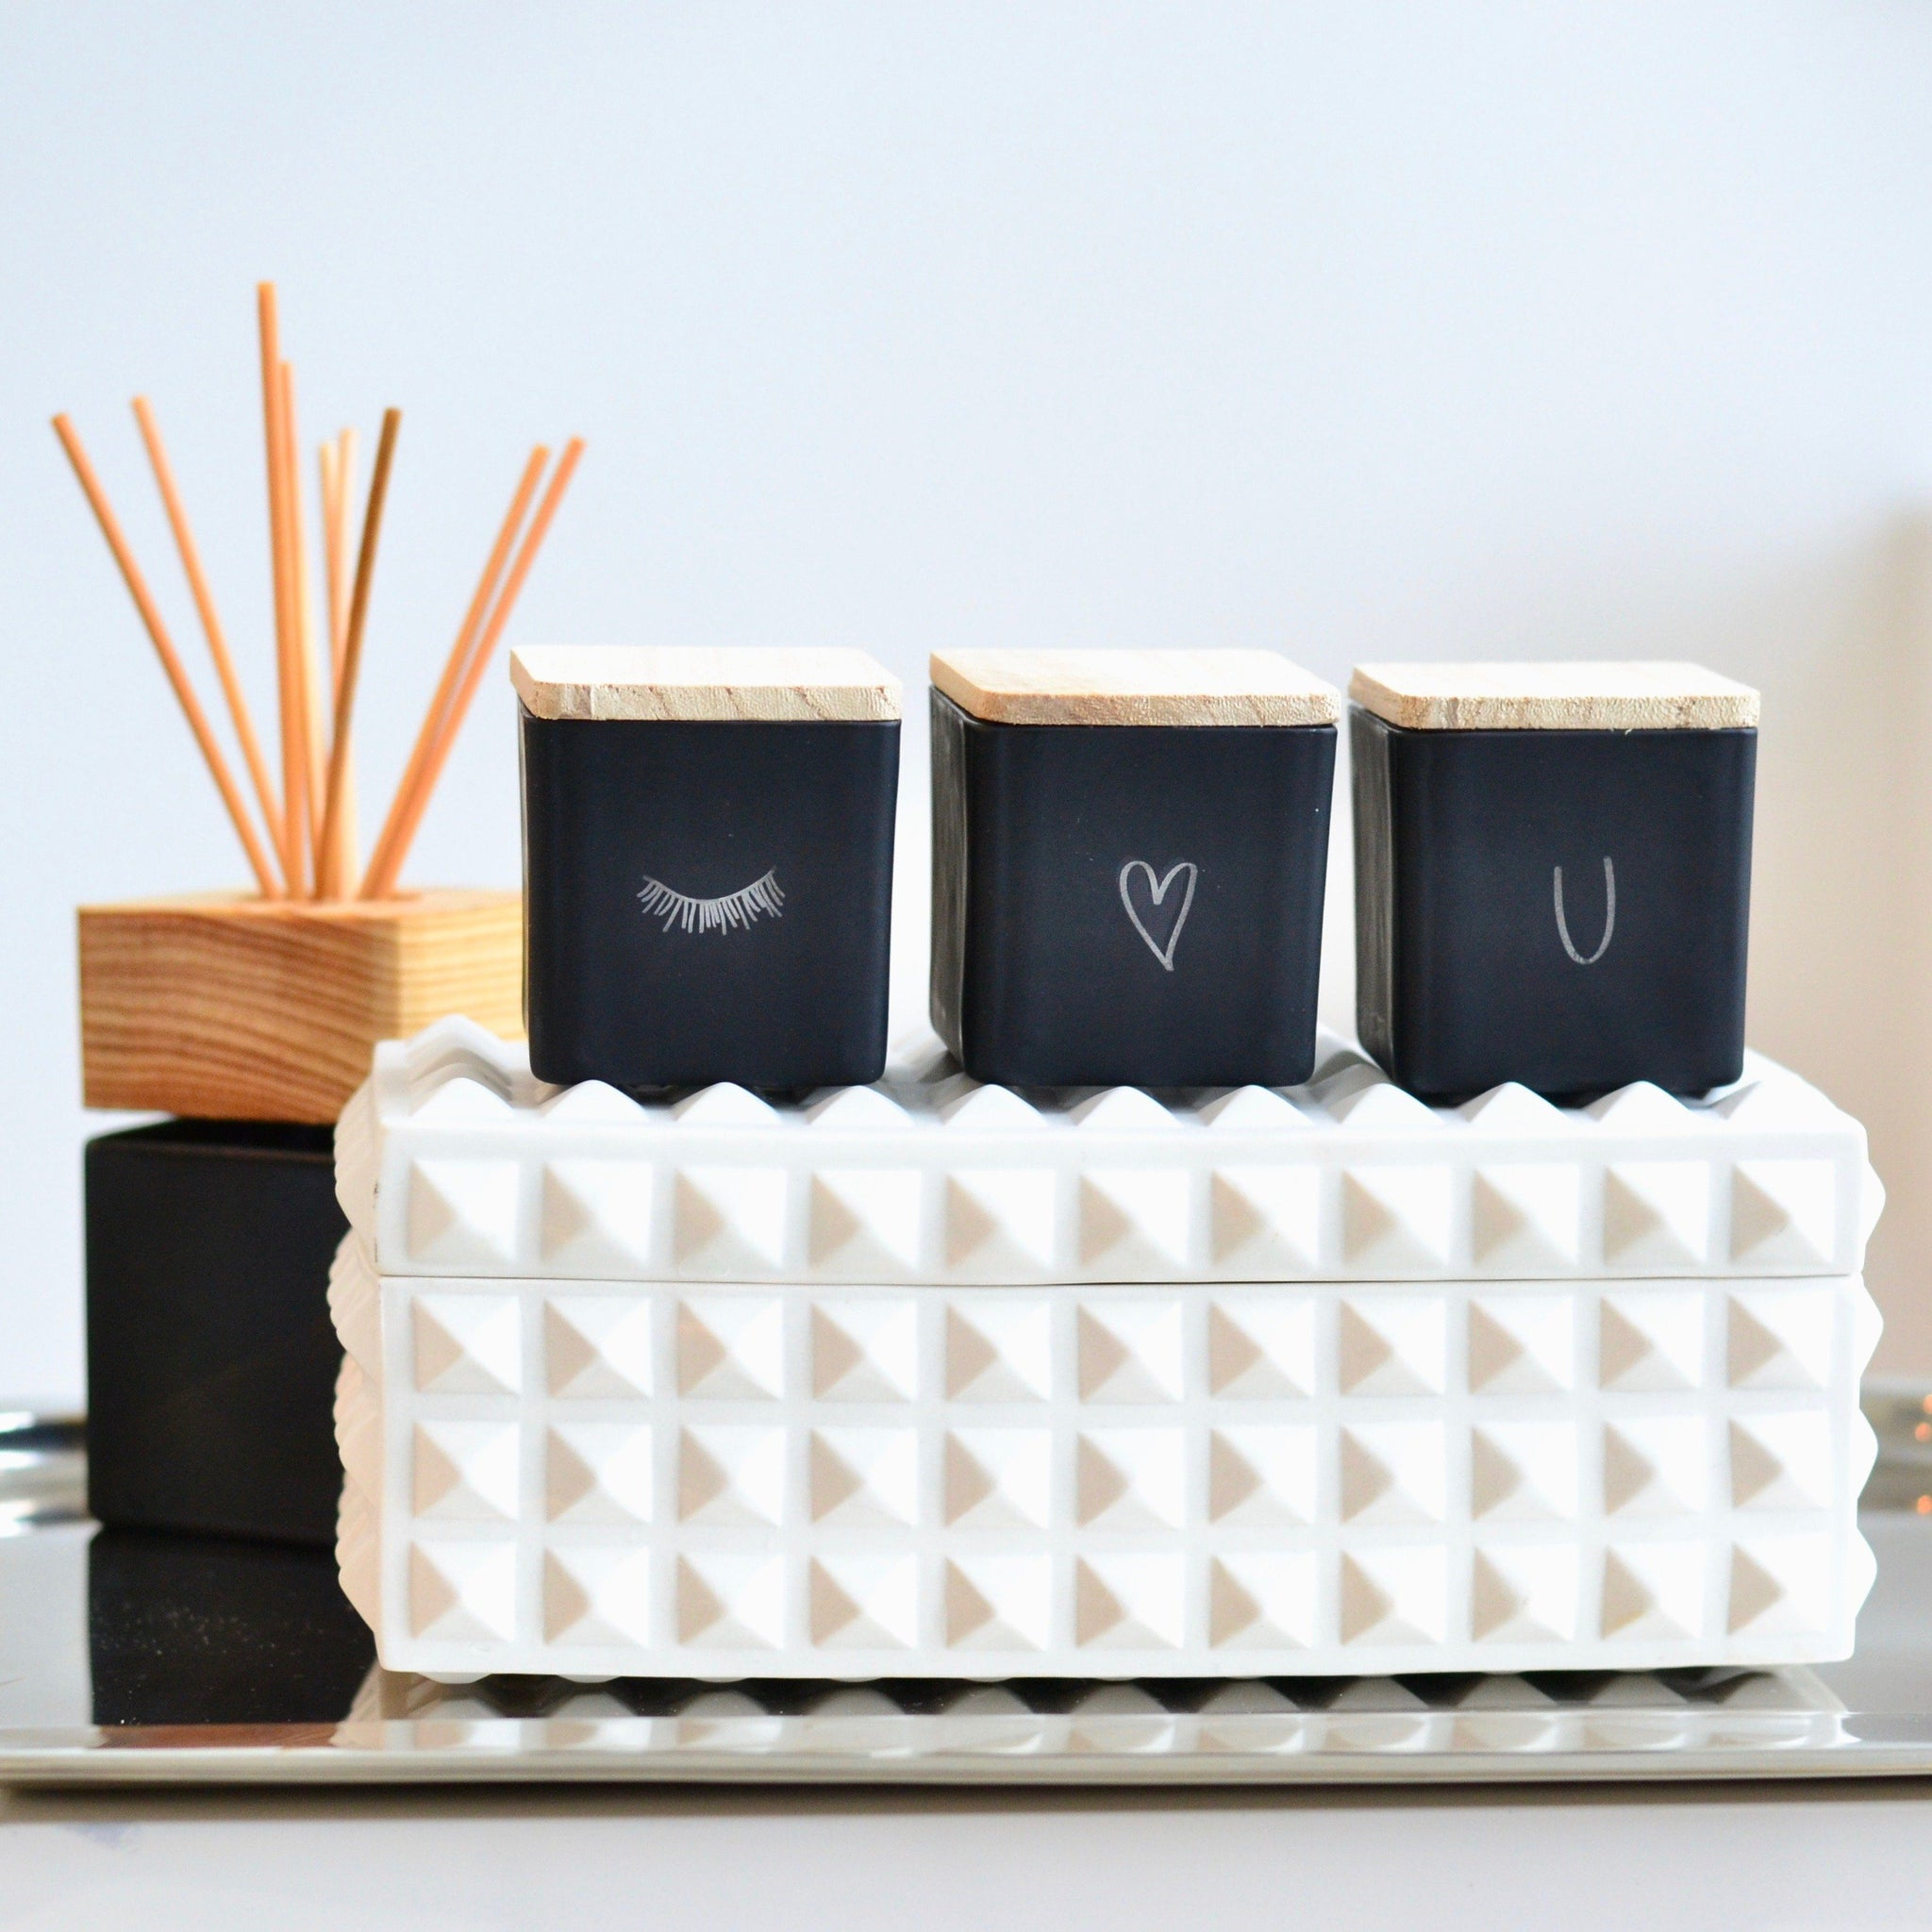 I HEART YOU CANDLES (GIFT SET)